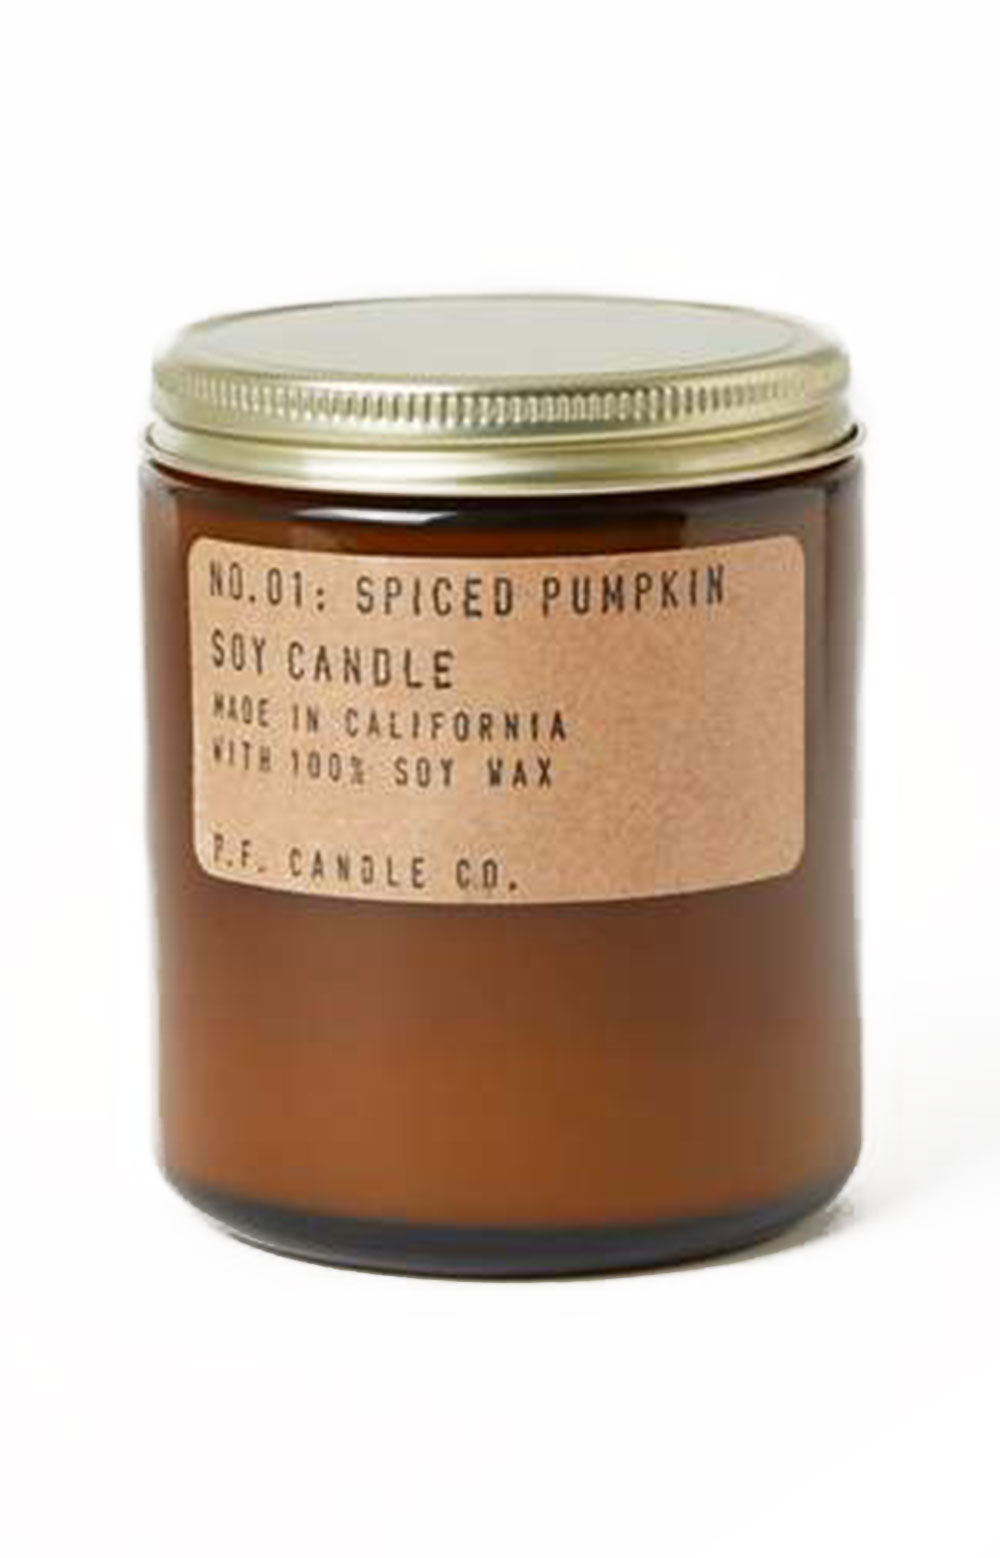 Spiced Pumpkin Soy Candle - 7.2 Oz